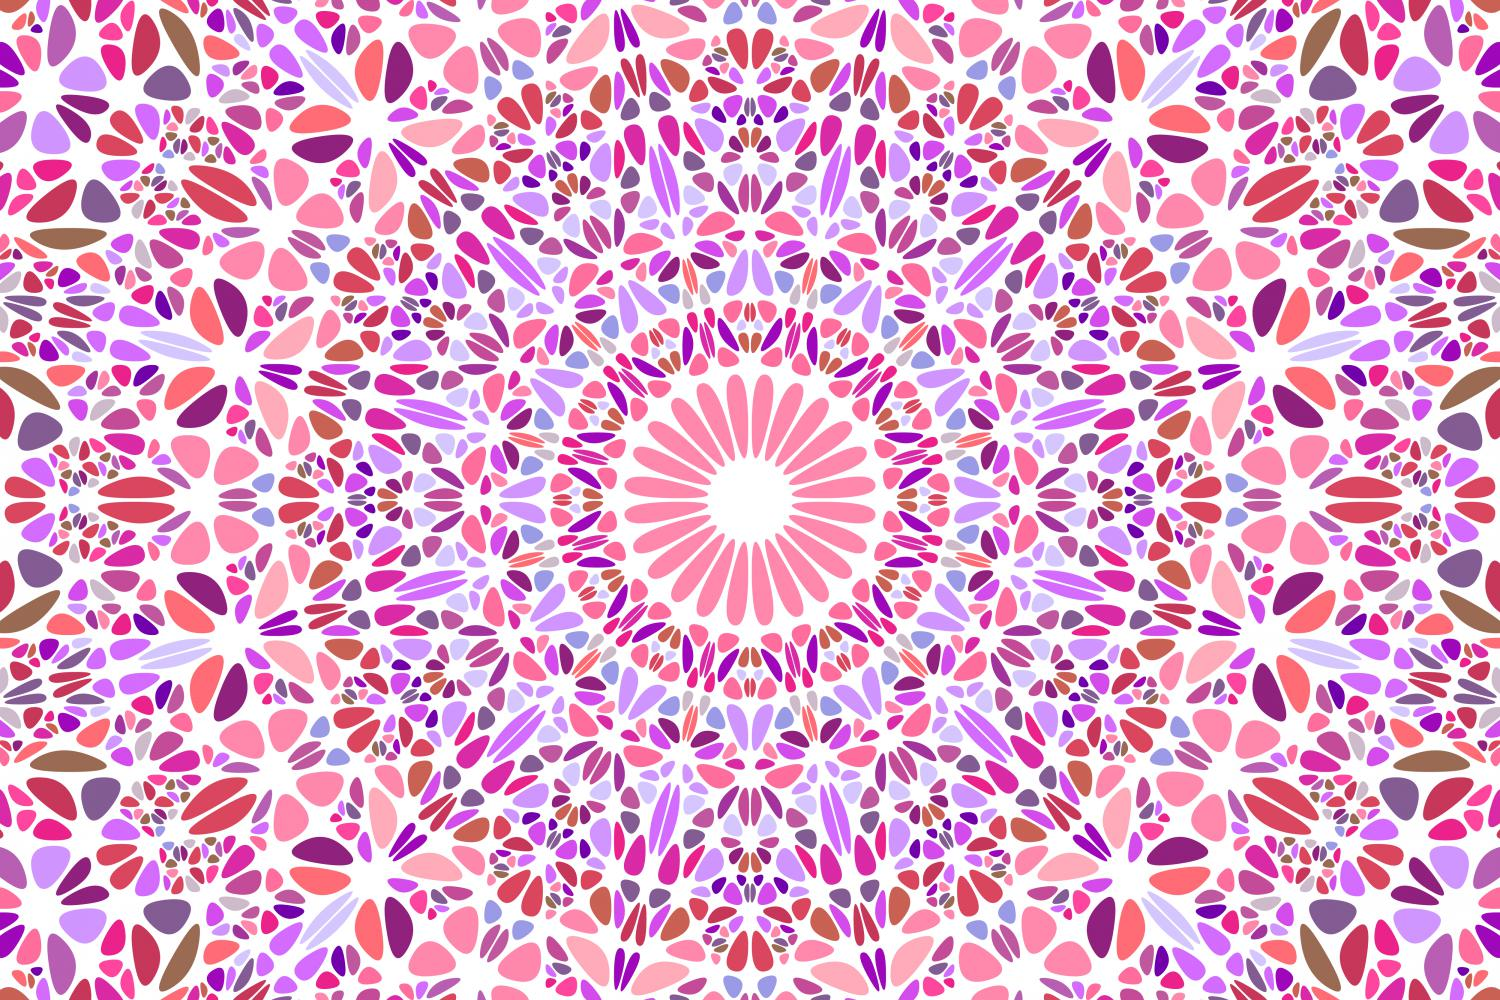 48 Floral Mandala Backgrounds example image 13